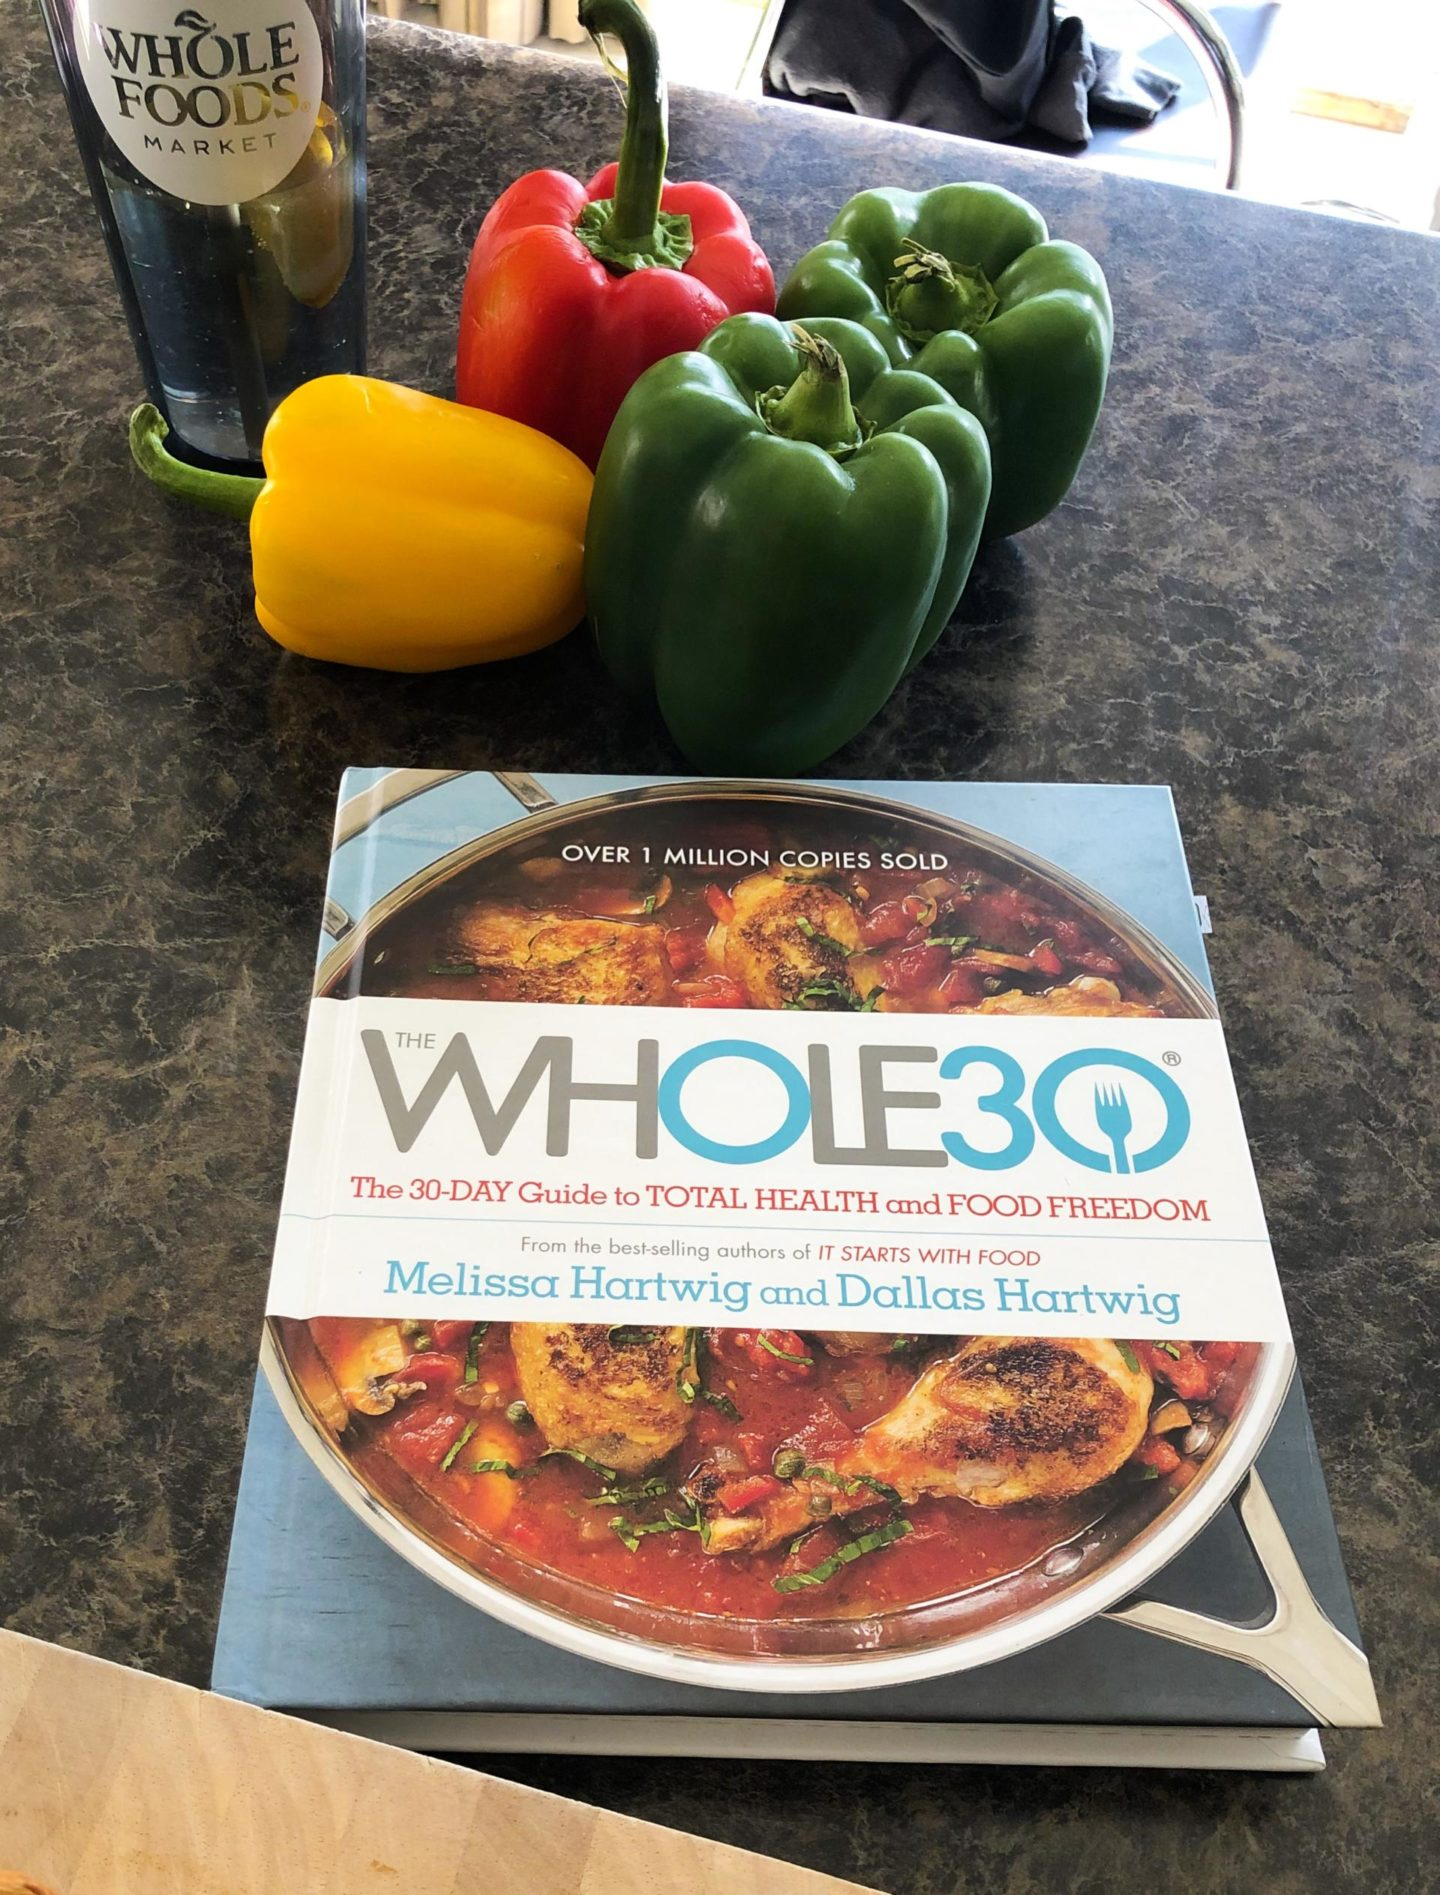 The Whole30 Cookbook surounded by bell peppers